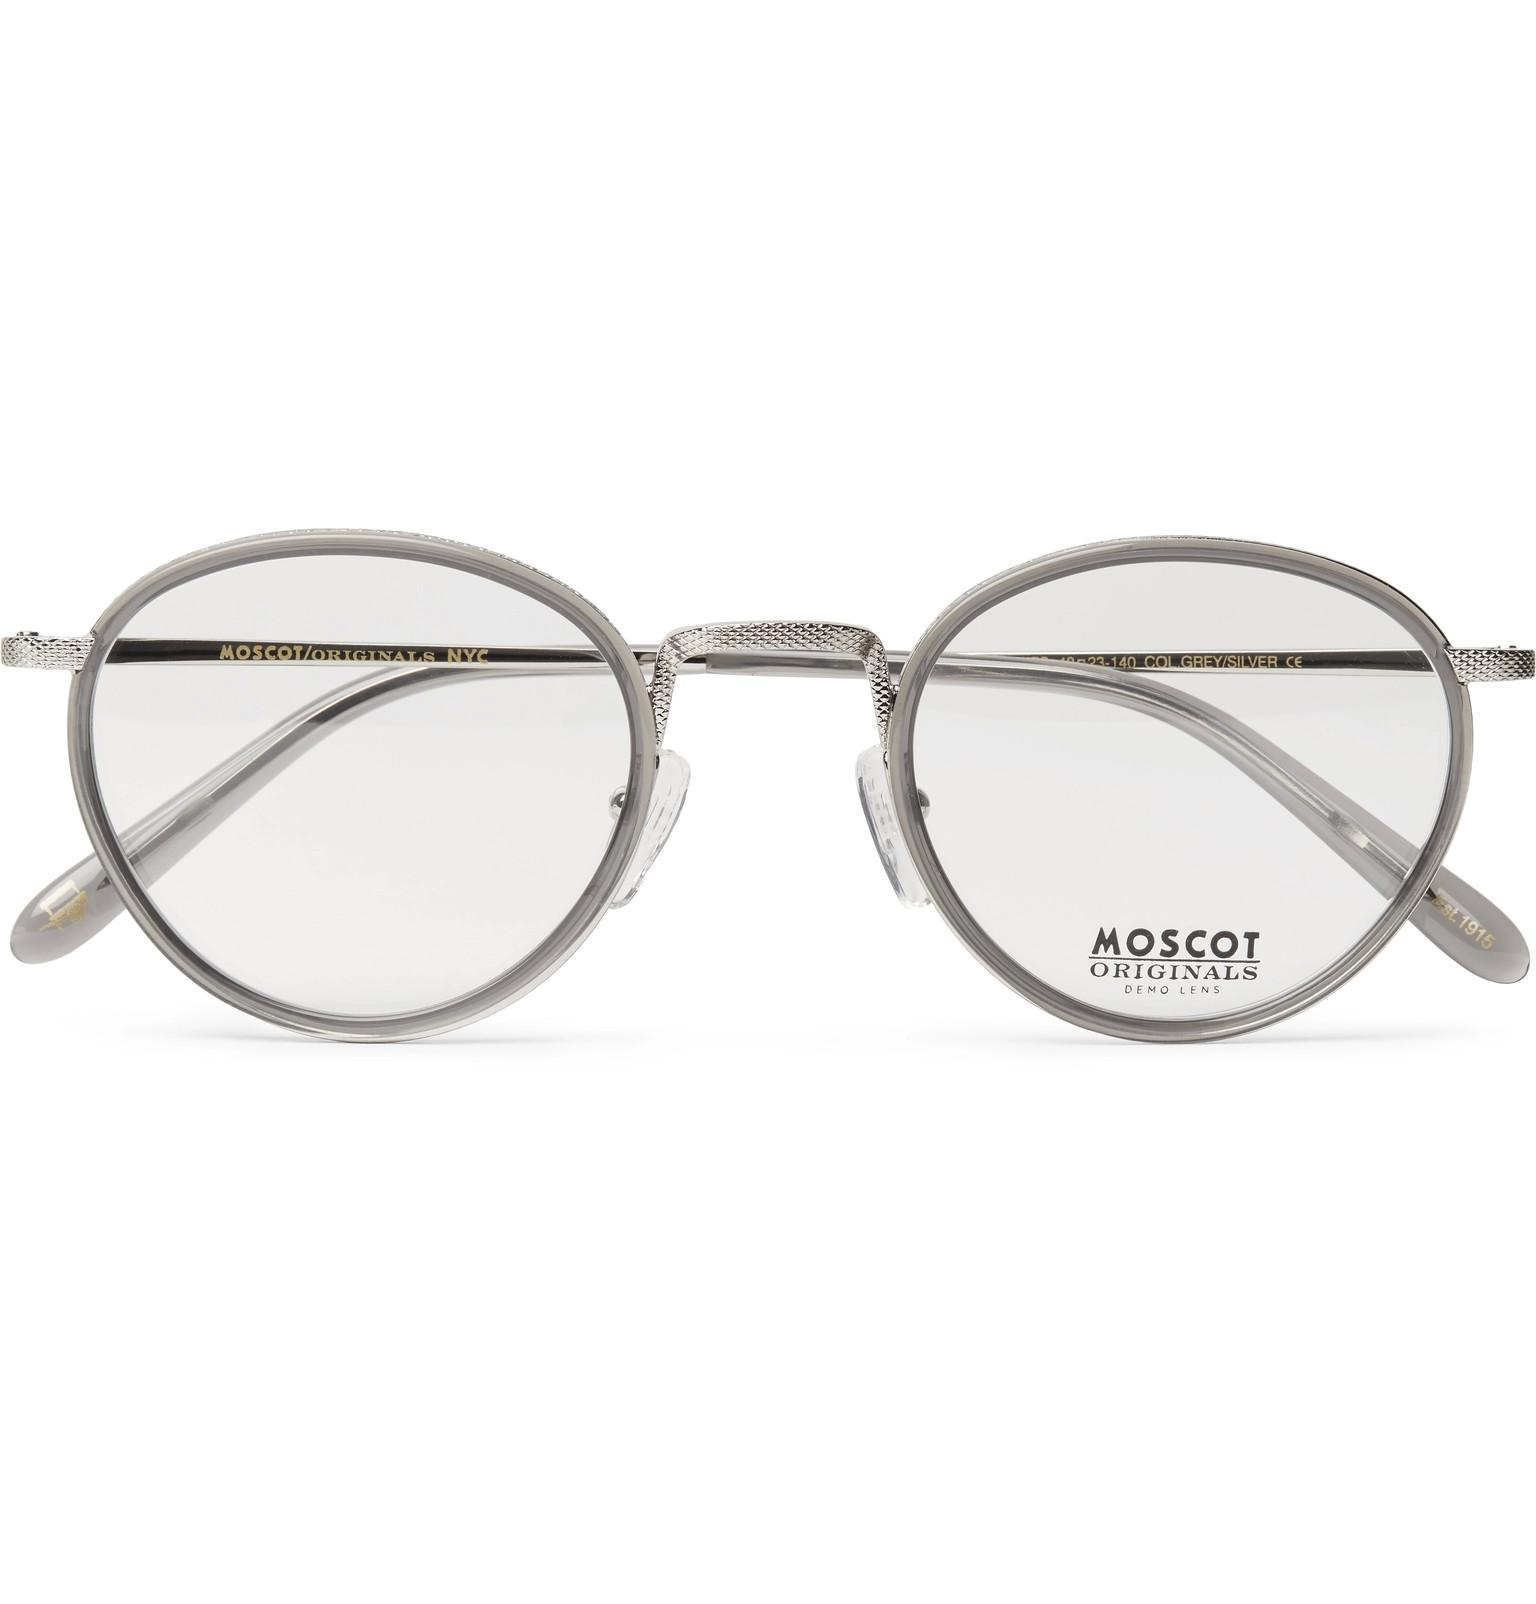 64c2a164865b Lyst - Moscot Bupkes Round-frame Acetate-trimmed Silver-tone Optical ...